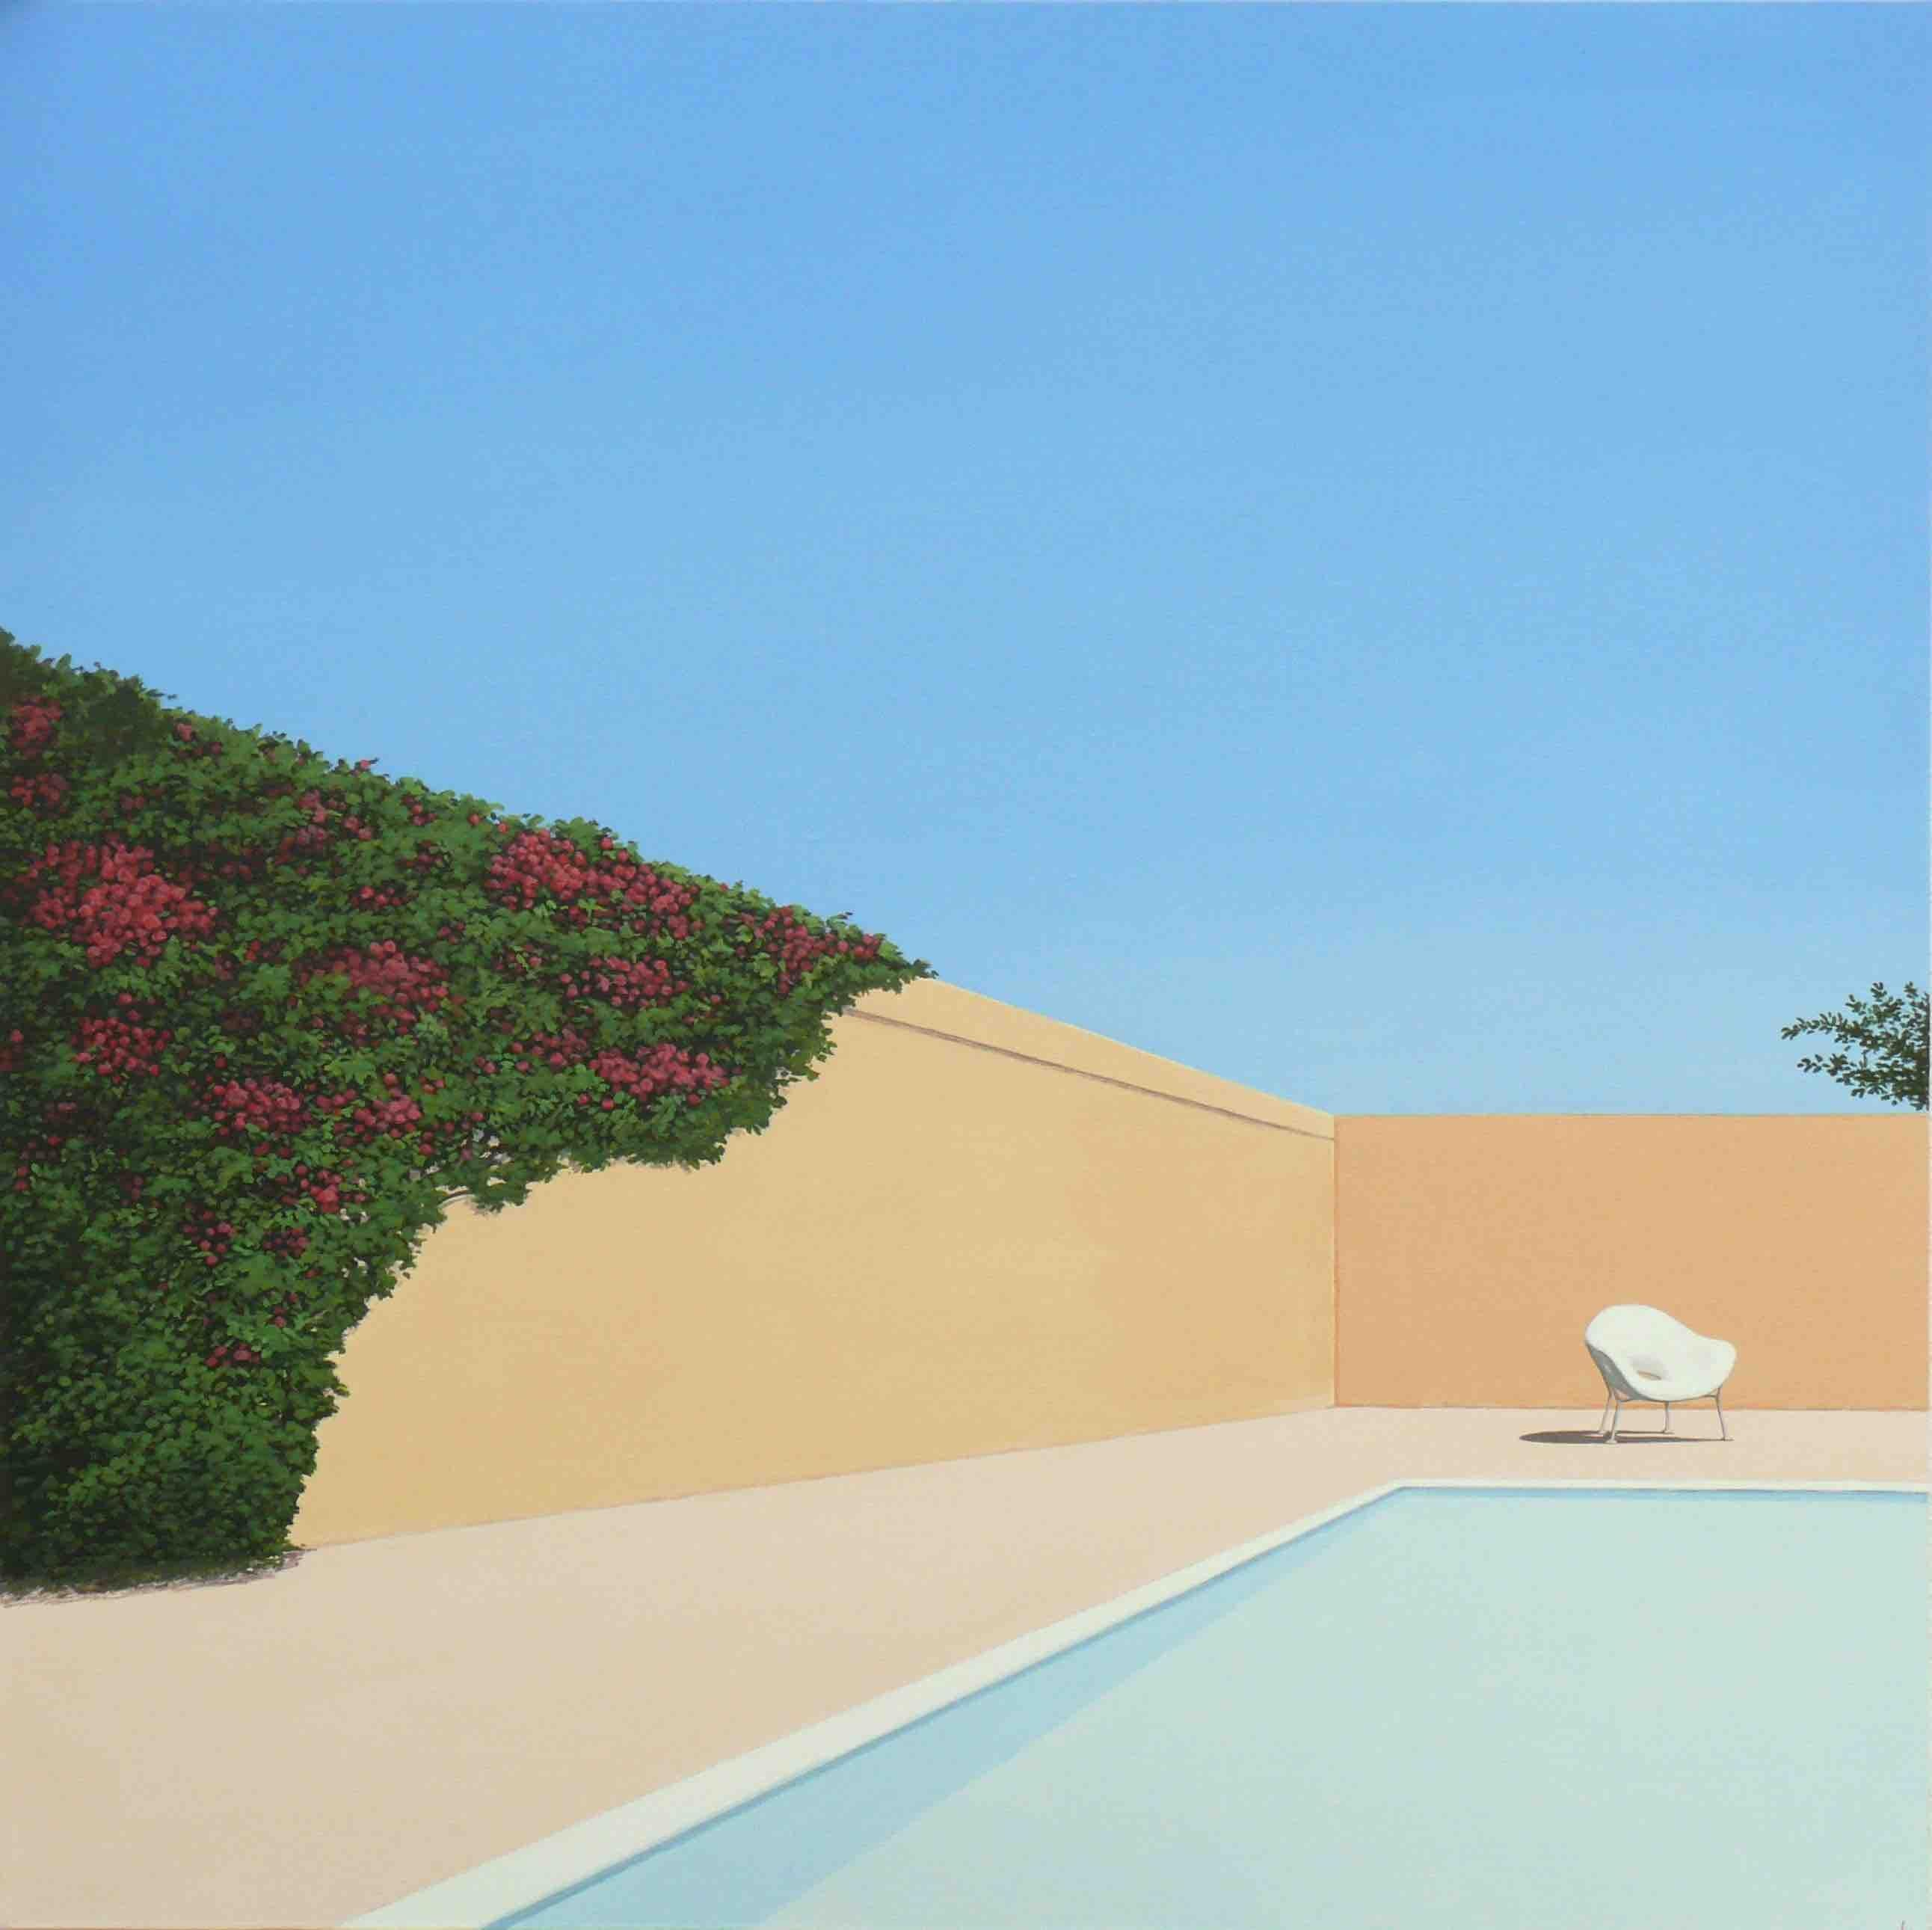 Rose garden by the pool - landscape painting